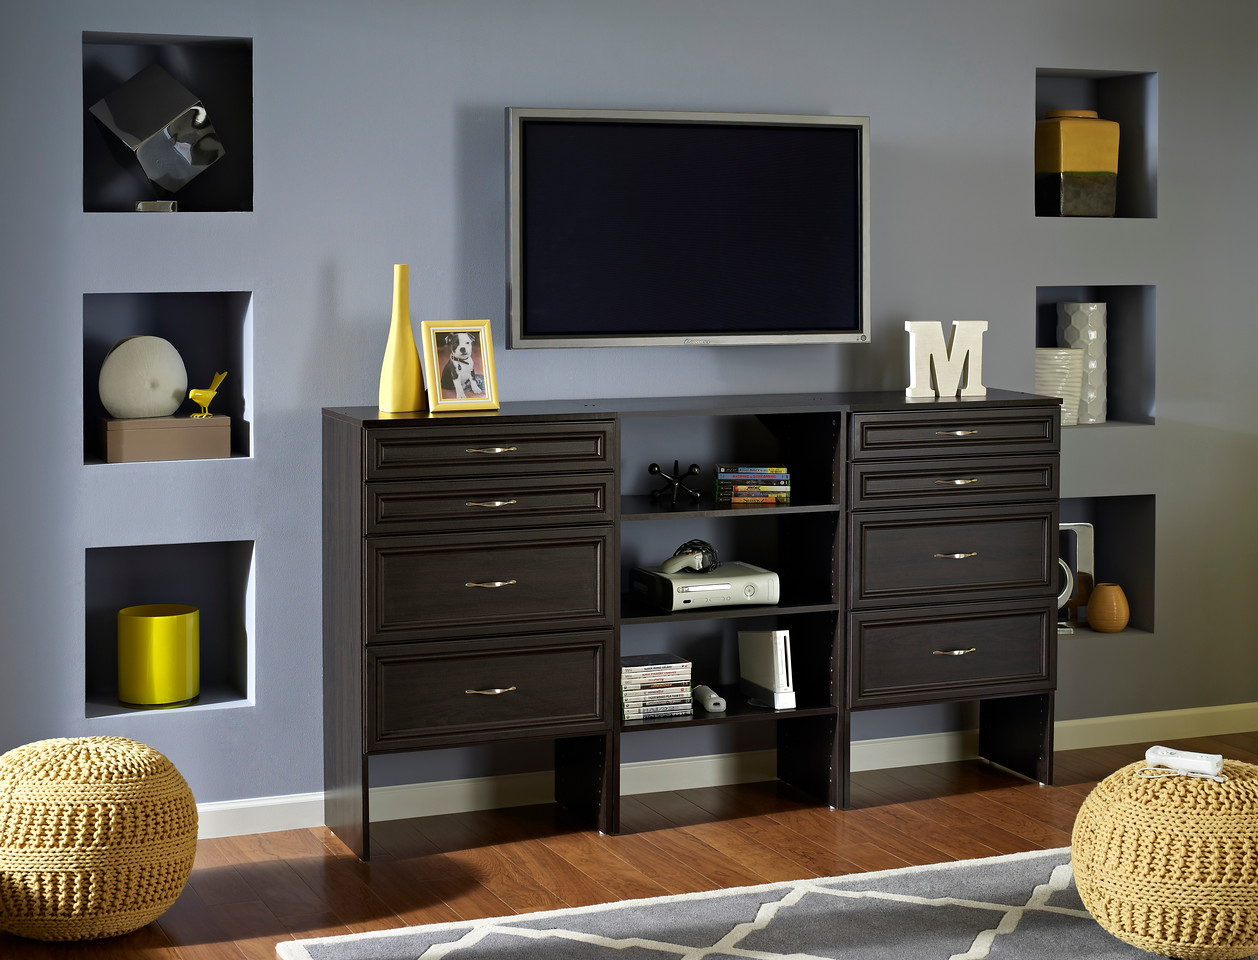 A Media Center/storage Area Created With ClosetMaid SuiteSymphony In  Espresso.